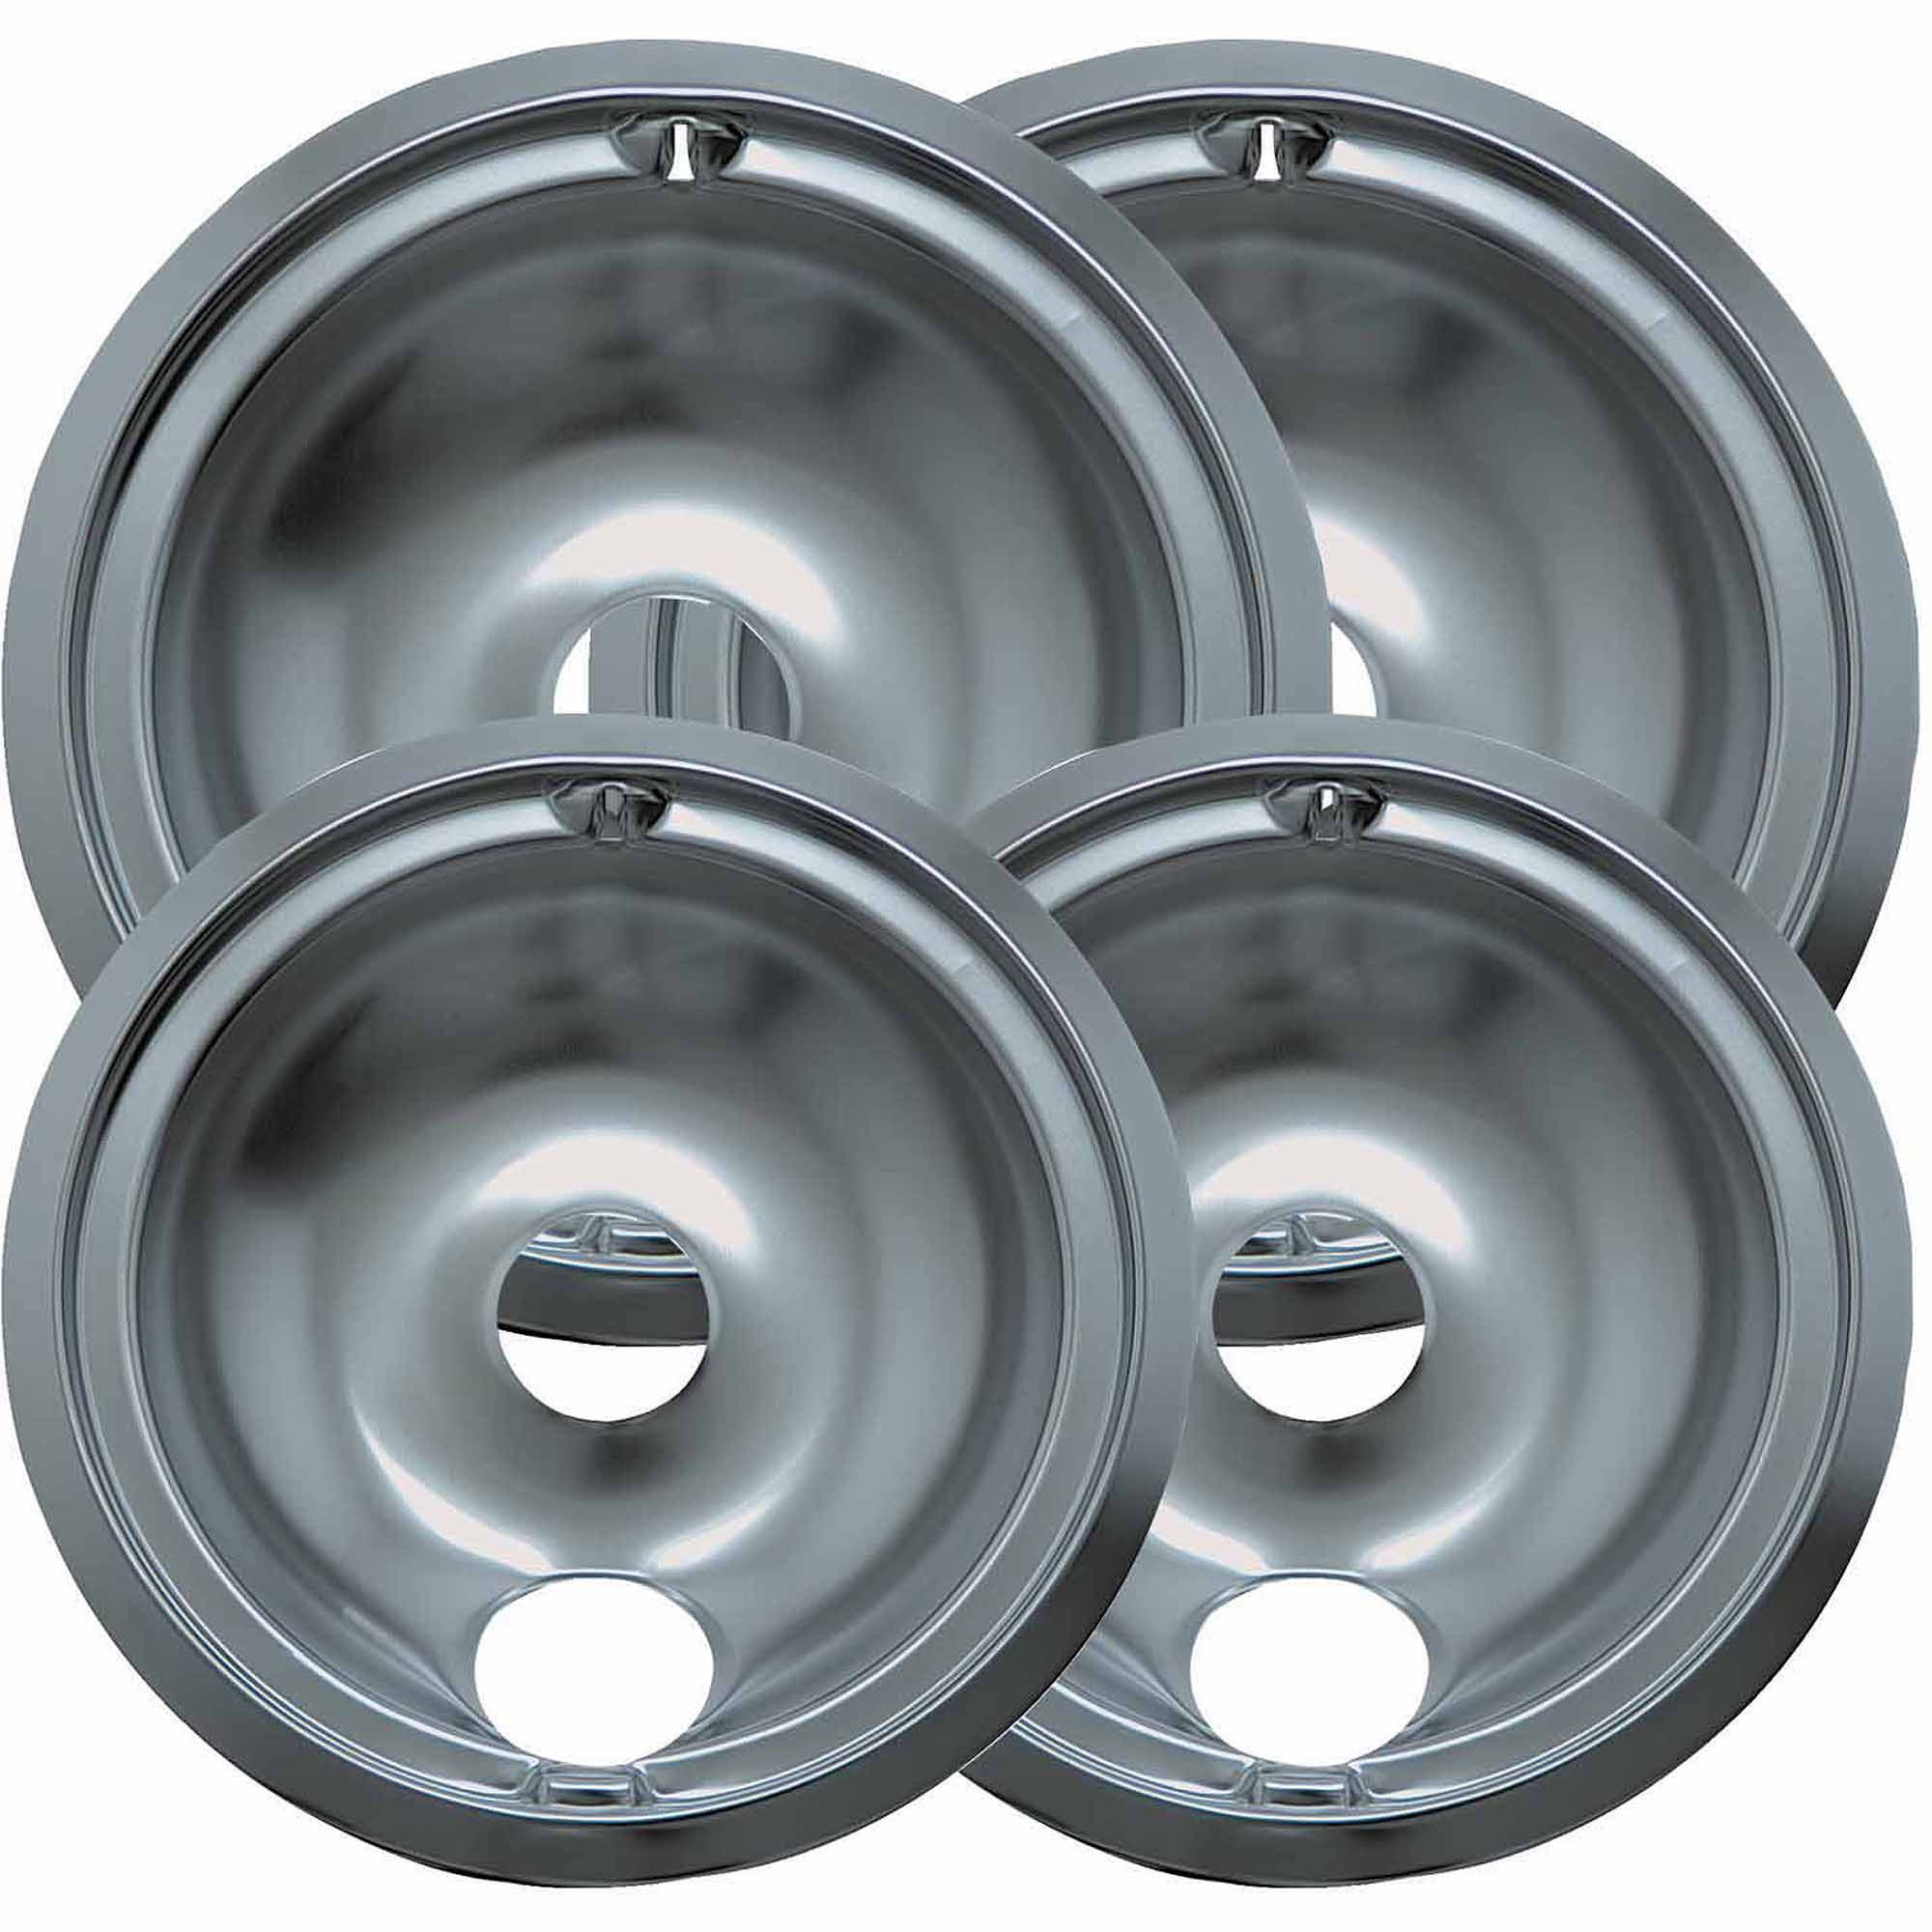 Range Kleen 4-Piece Drip Bowl, Style B fits Plug-in Electric Ranges GE/Hotpoint/Kenmore/RCA, Chrome